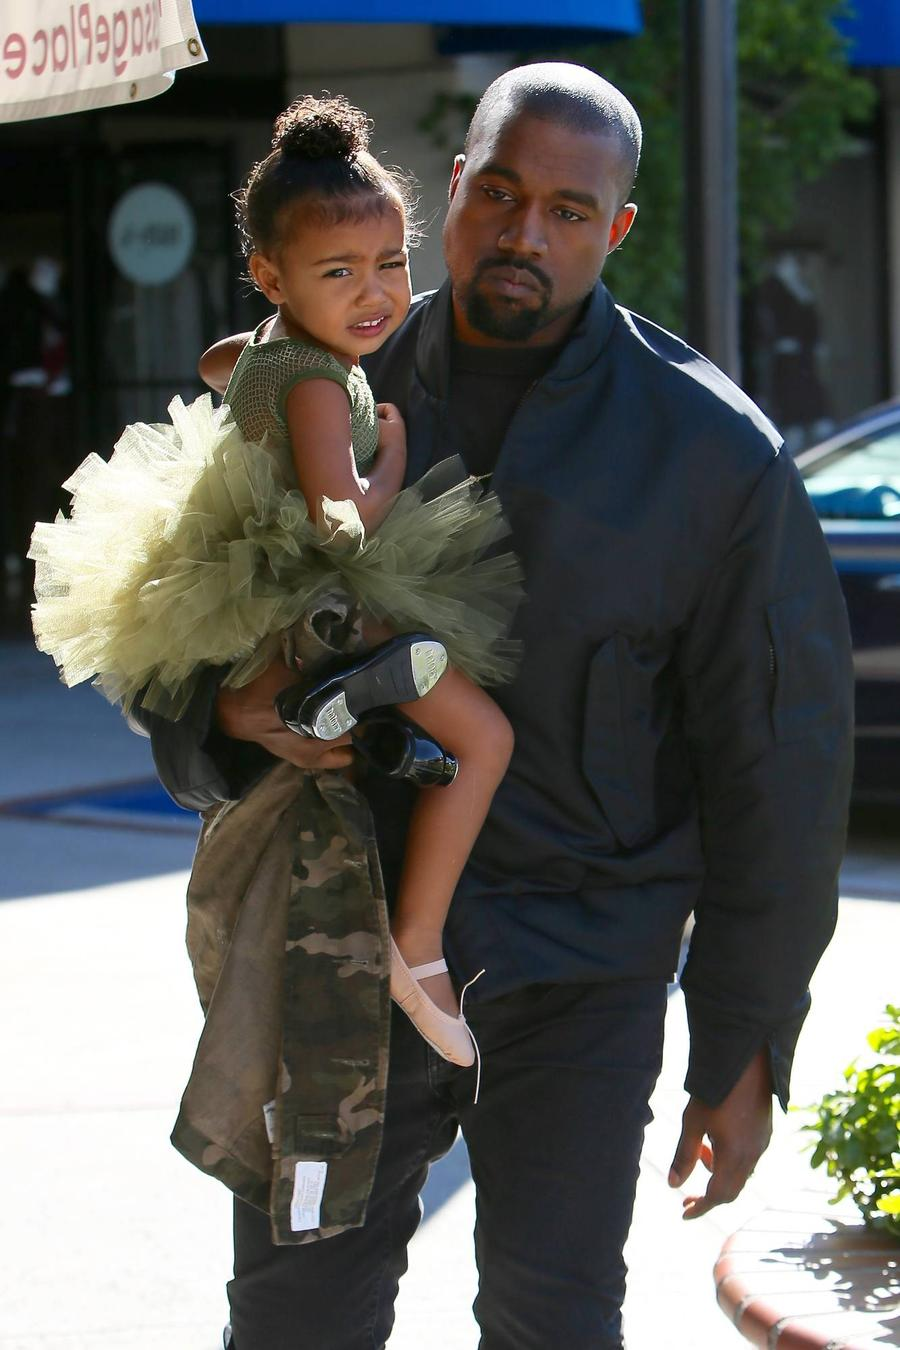 North Flushed Kanye West's Early Album Raps Down The Toilet